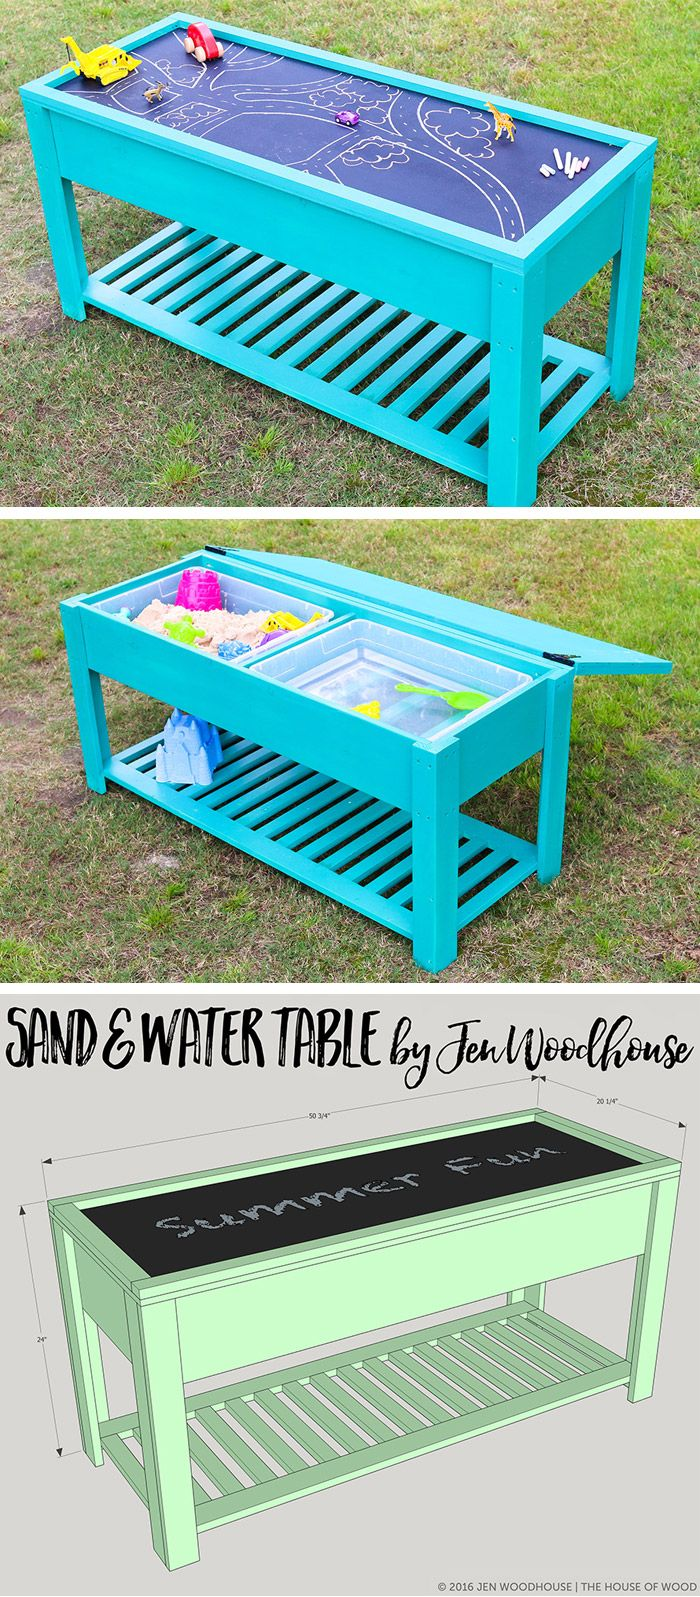 Learn How To Build A Fun DIY Sand And Water Table For Your Kids! Free